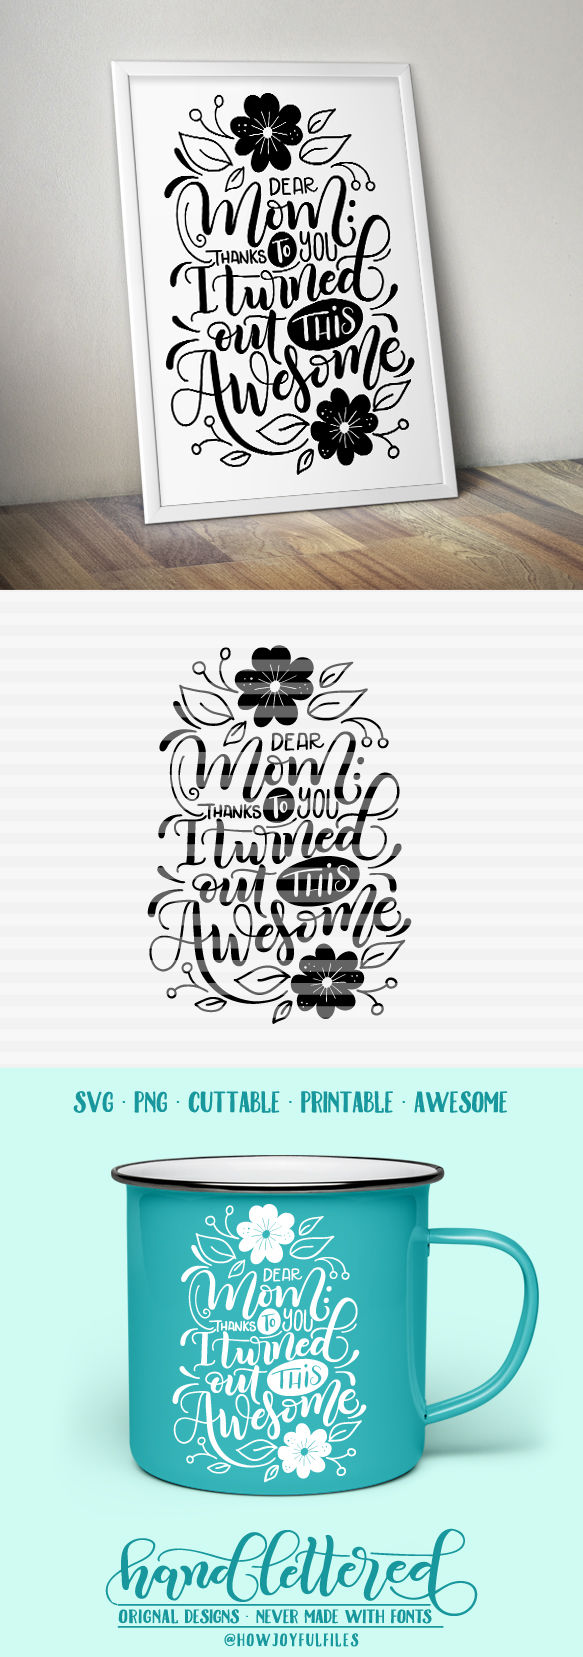 Dear Mom Thanks To You I Turned Out This Awesome Svg Pdf Dxf Hand Drawn Lettered Cut File Graphic Overlay By Howjoyful Files Thehungryjpeg Com